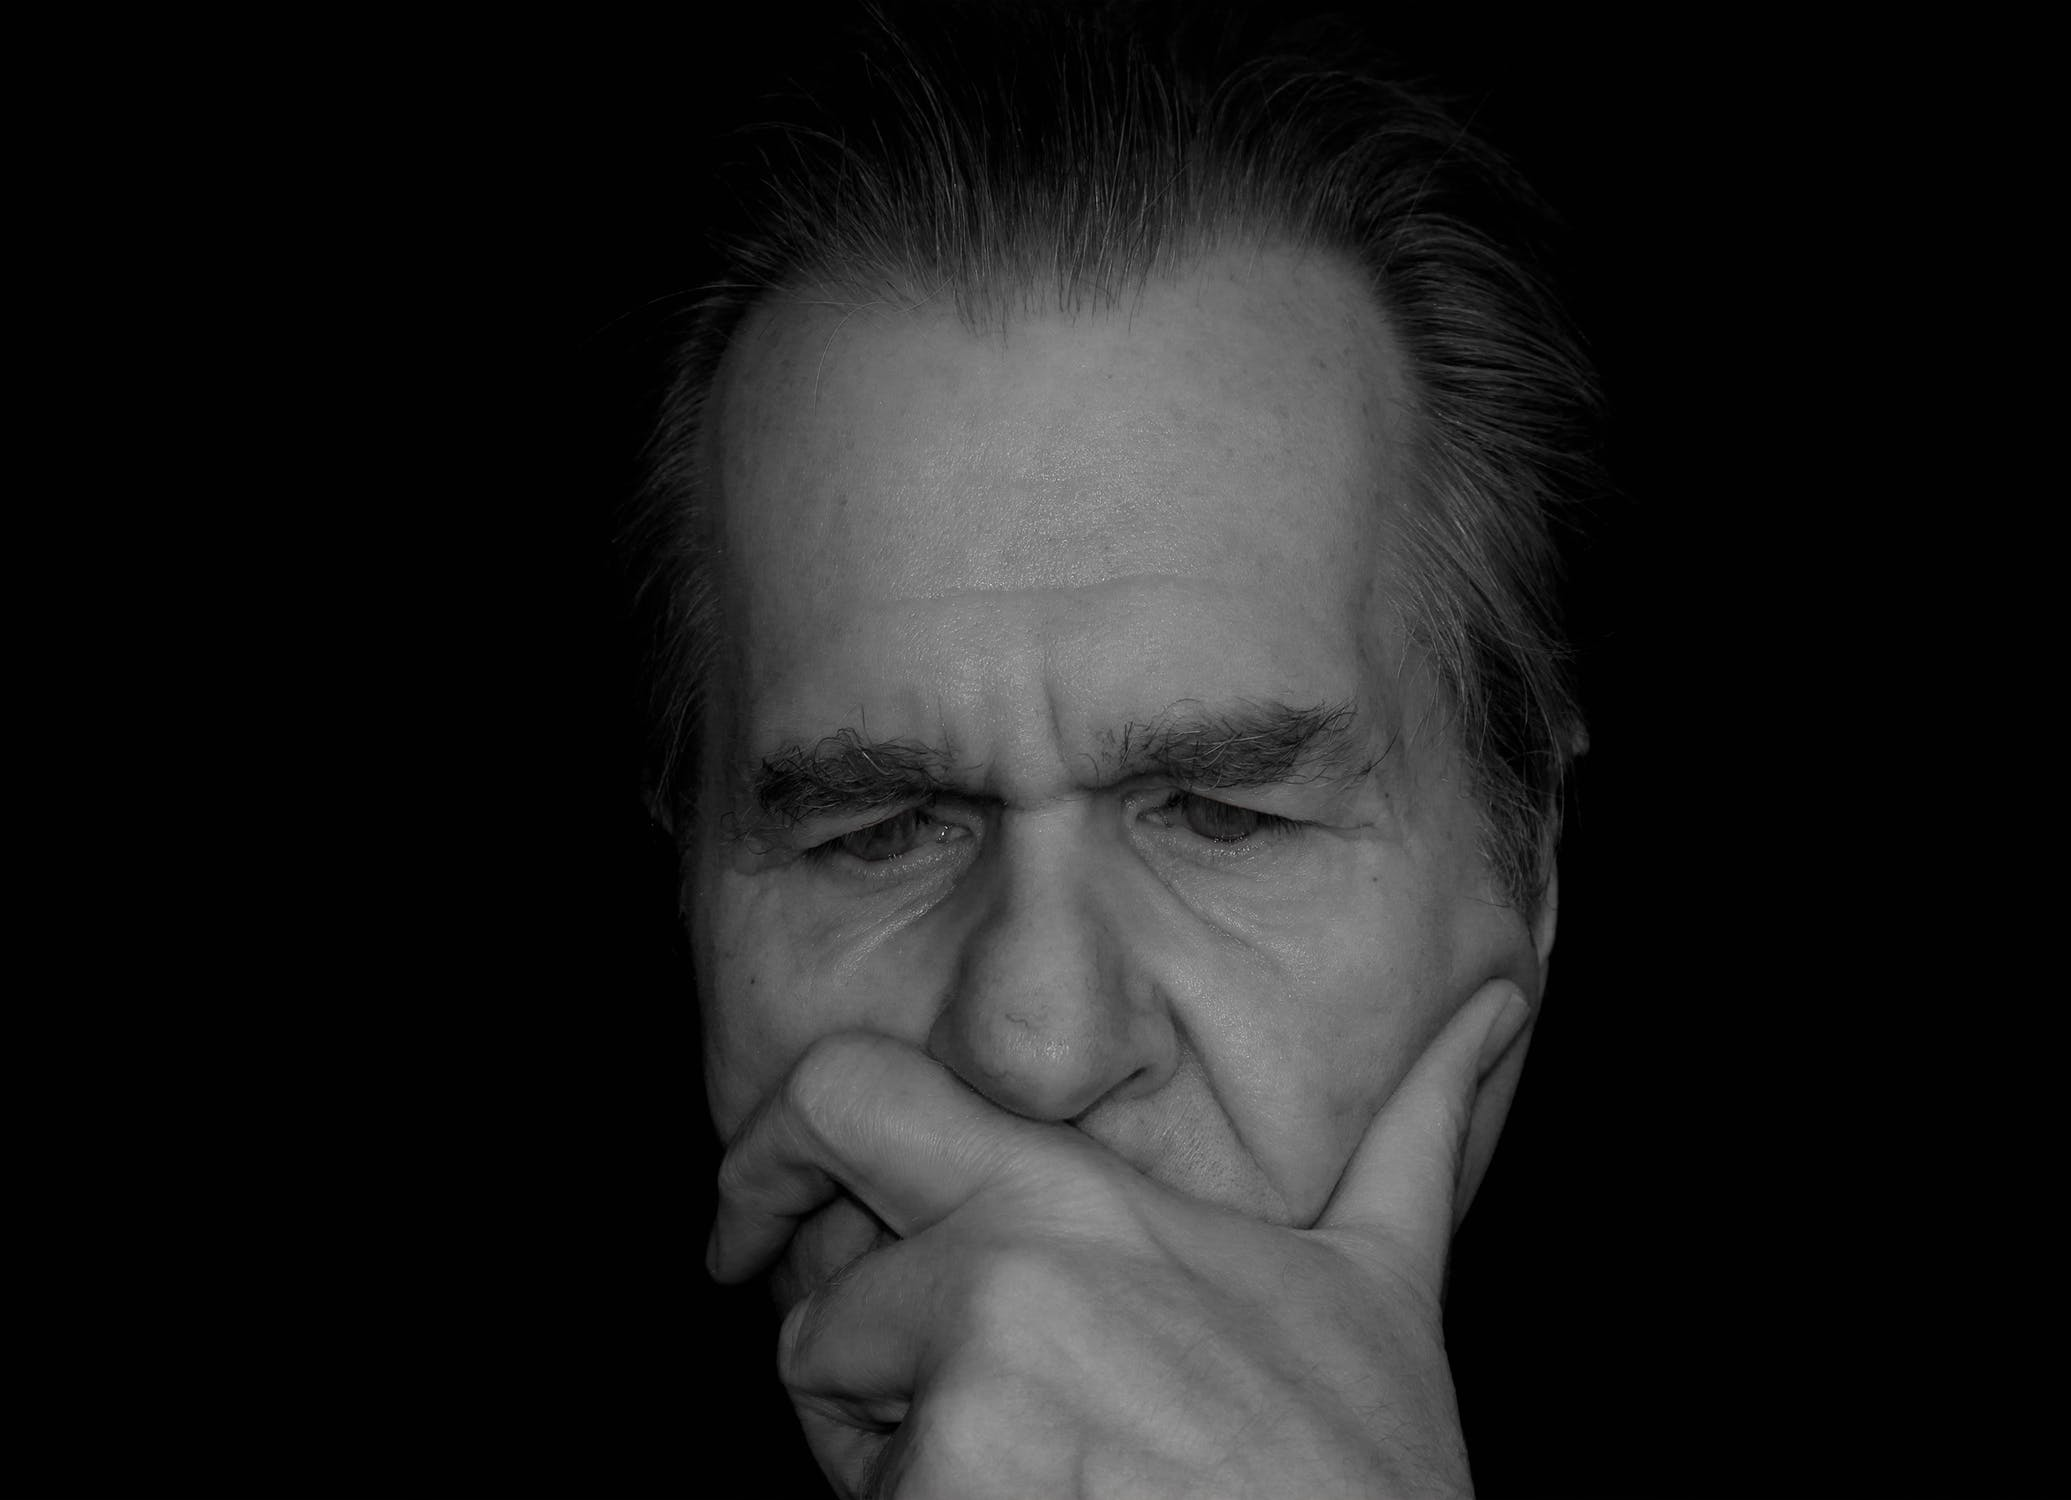 An older man thinking about if he is suffering from alzheimer's or forgetfulness.